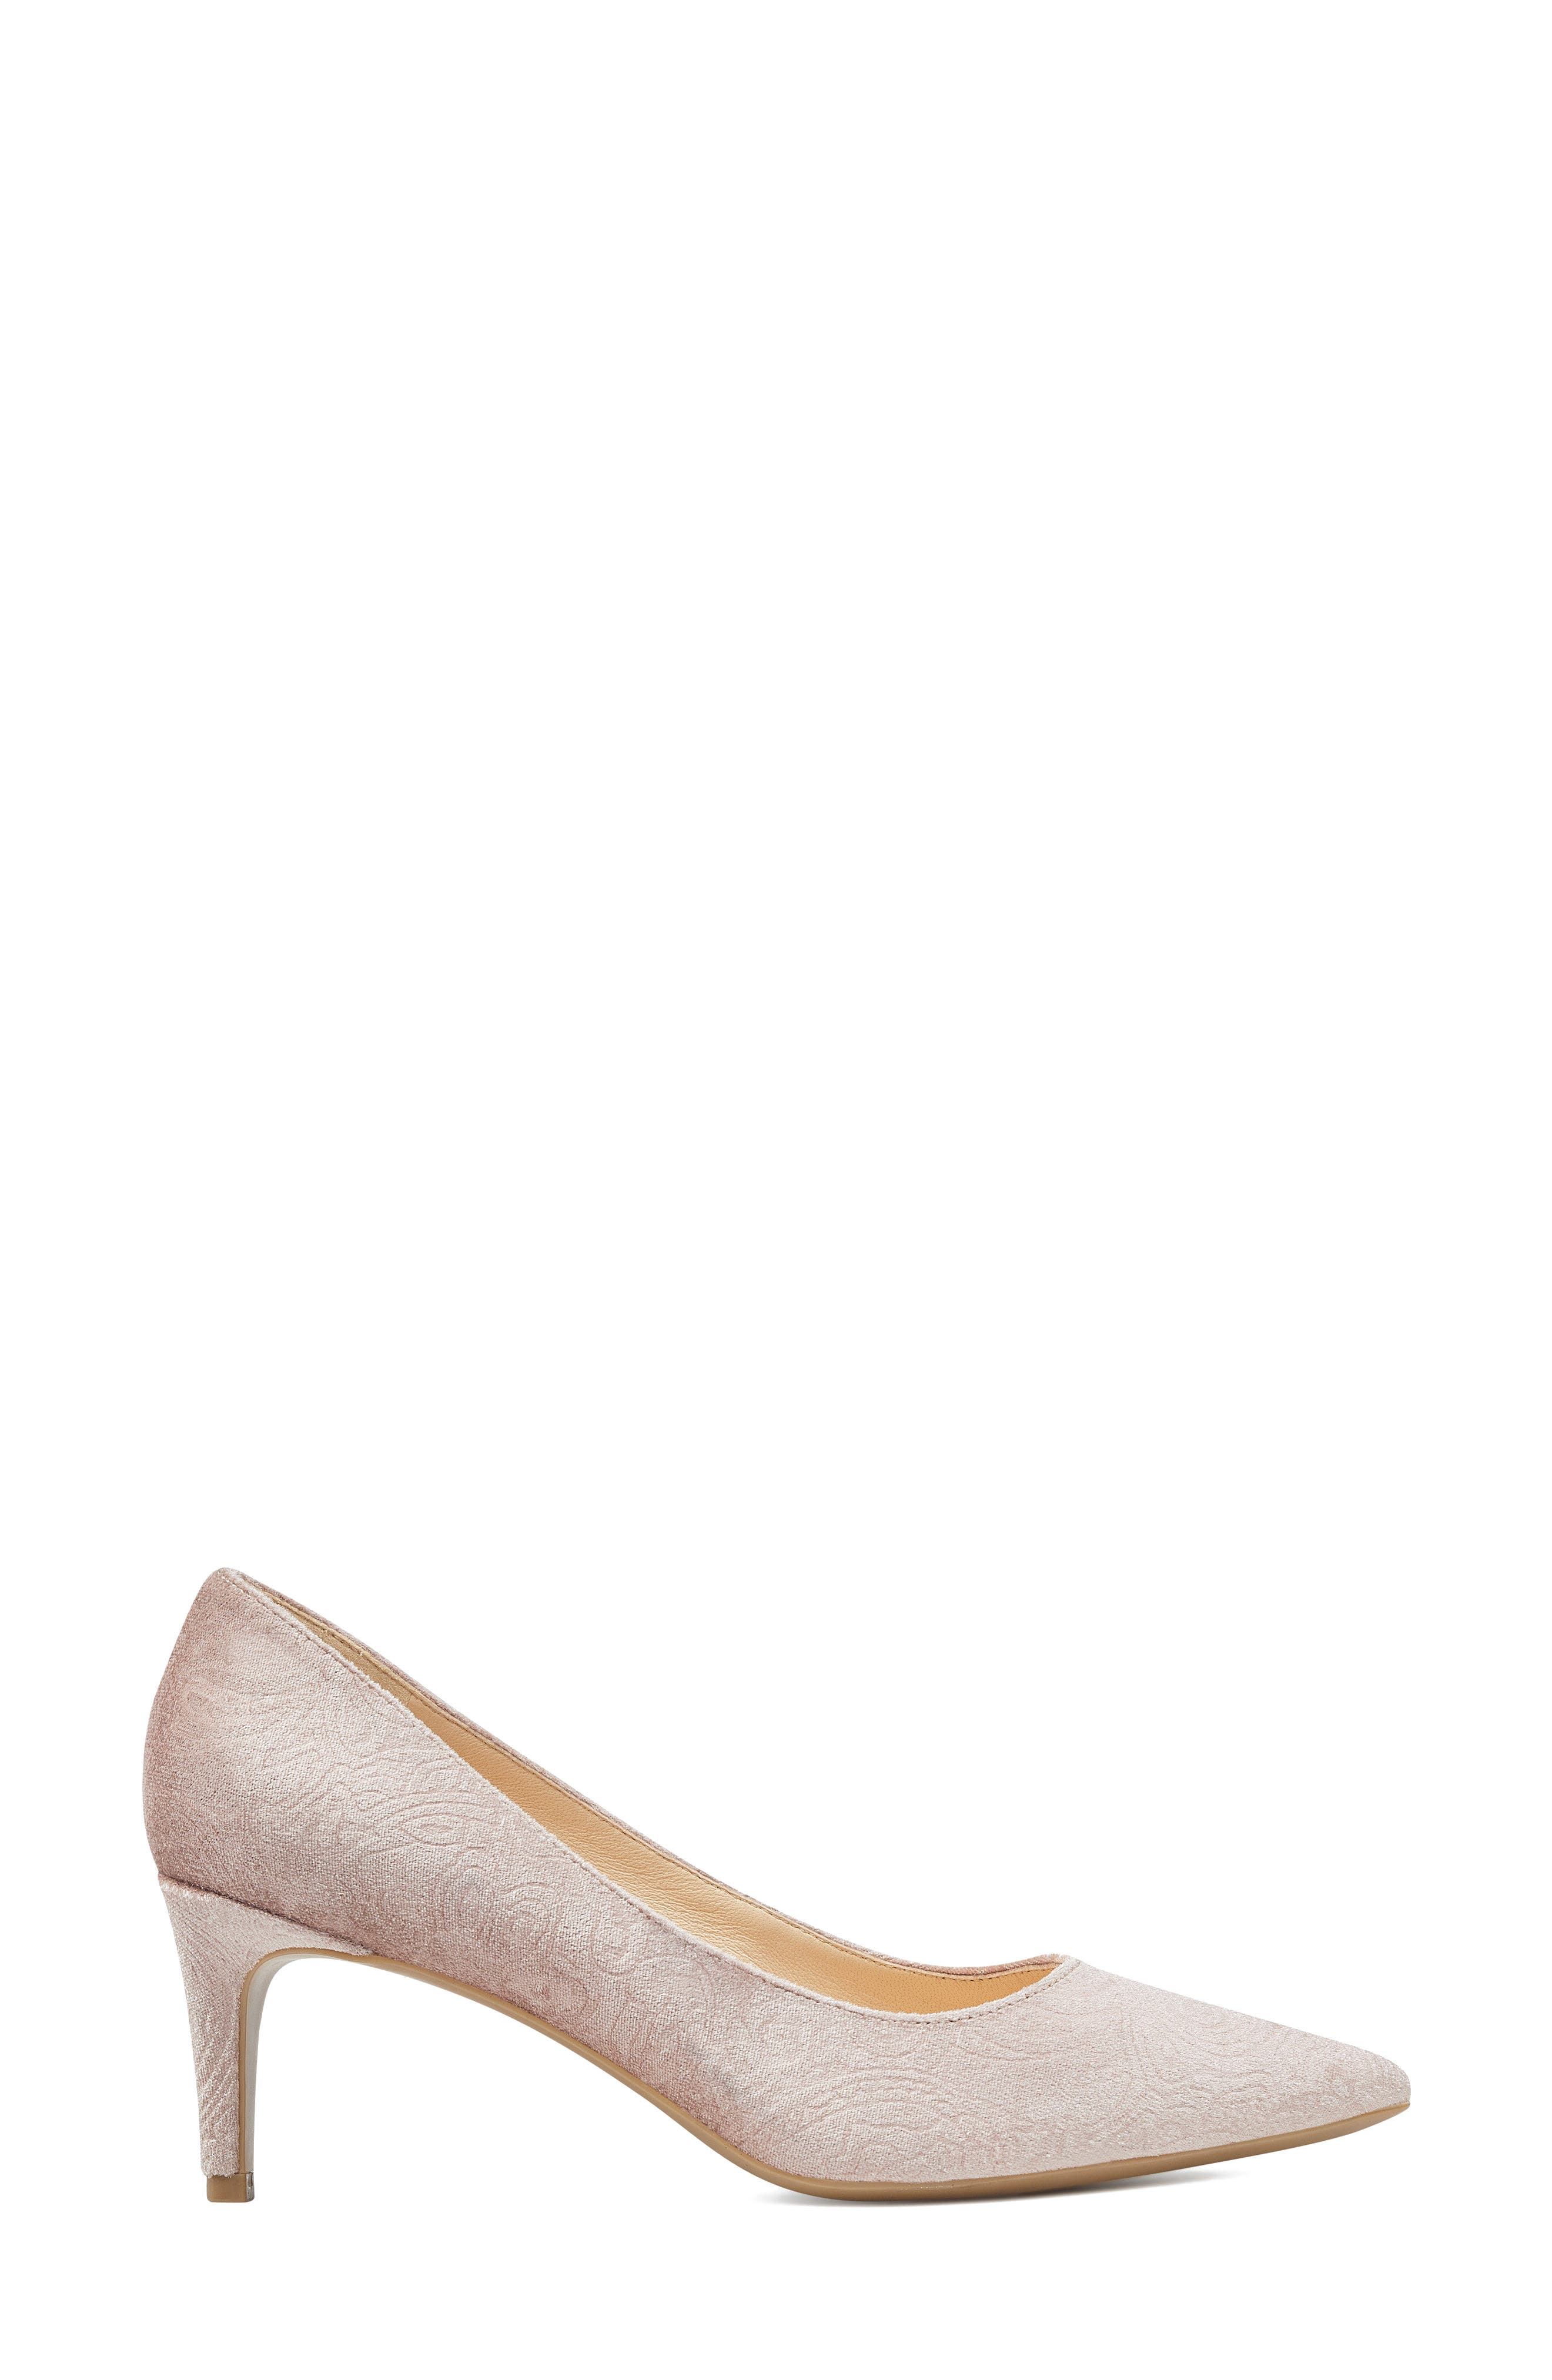 Soho Pointy Toe Pump,                             Alternate thumbnail 20, color,